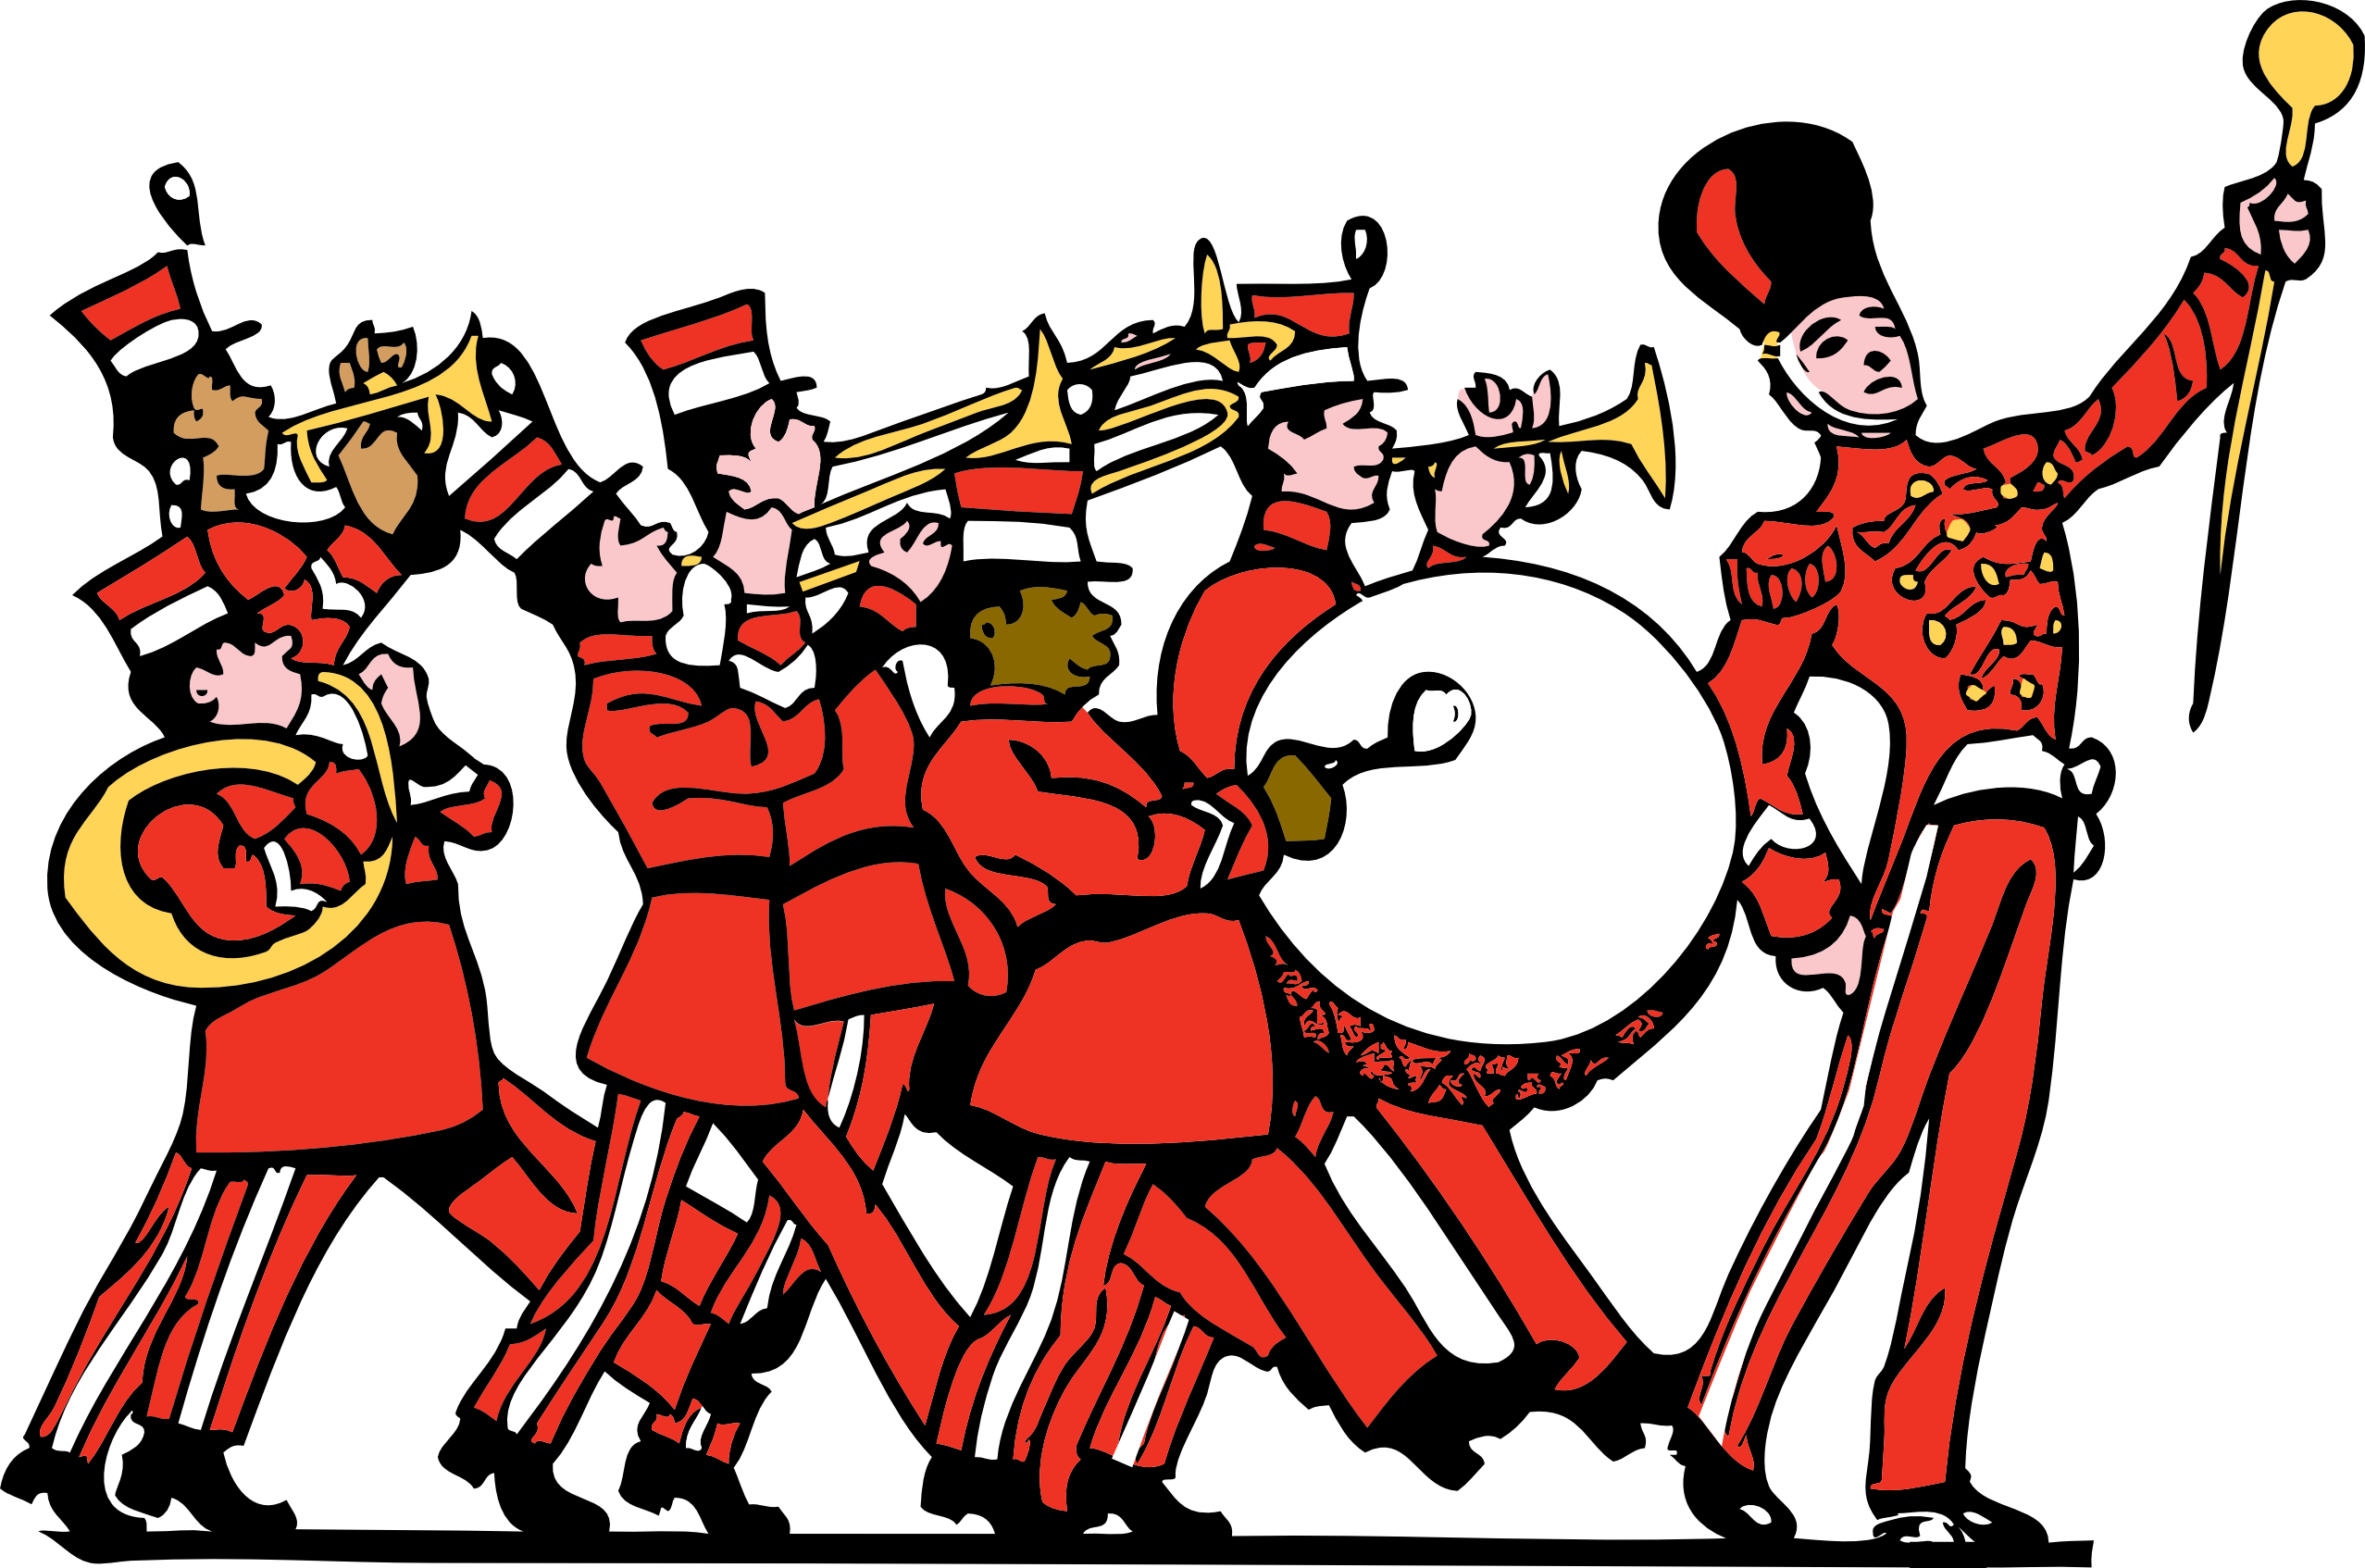 Free festival cliparts download. Band clipart school band image transparent stock